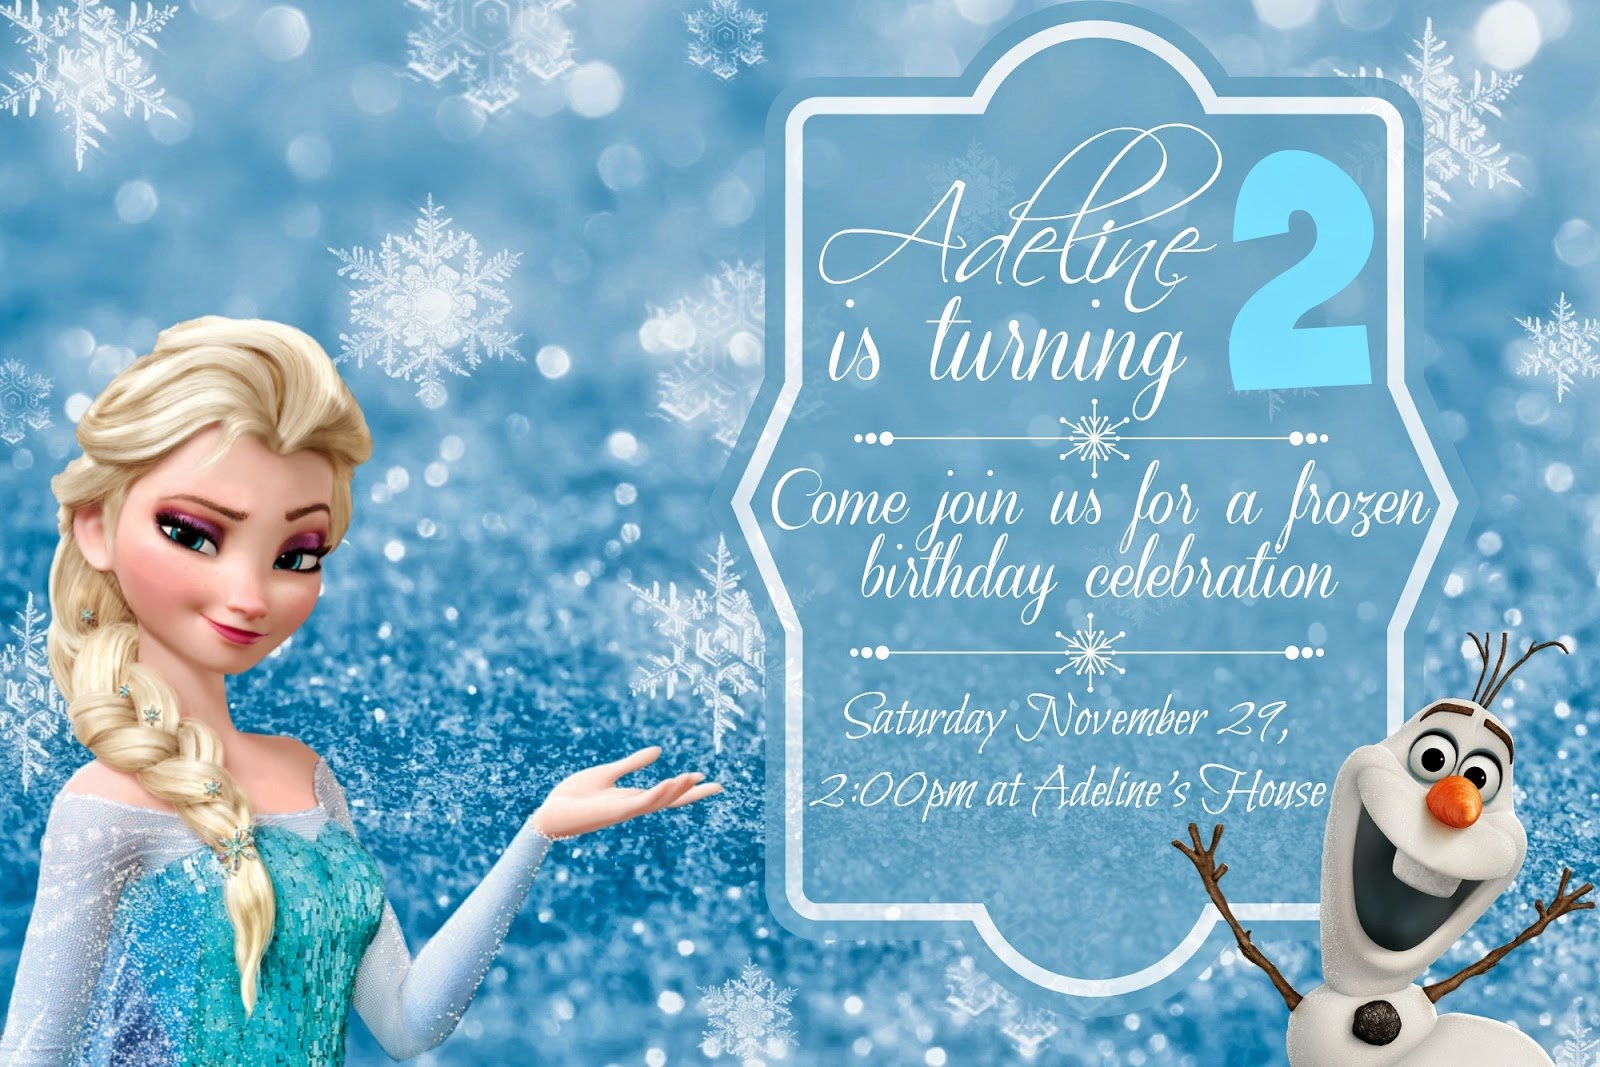 Frozen Invitation Template Free Download Lovely orchard Girls Free Frozen Birthday Party Invitations and